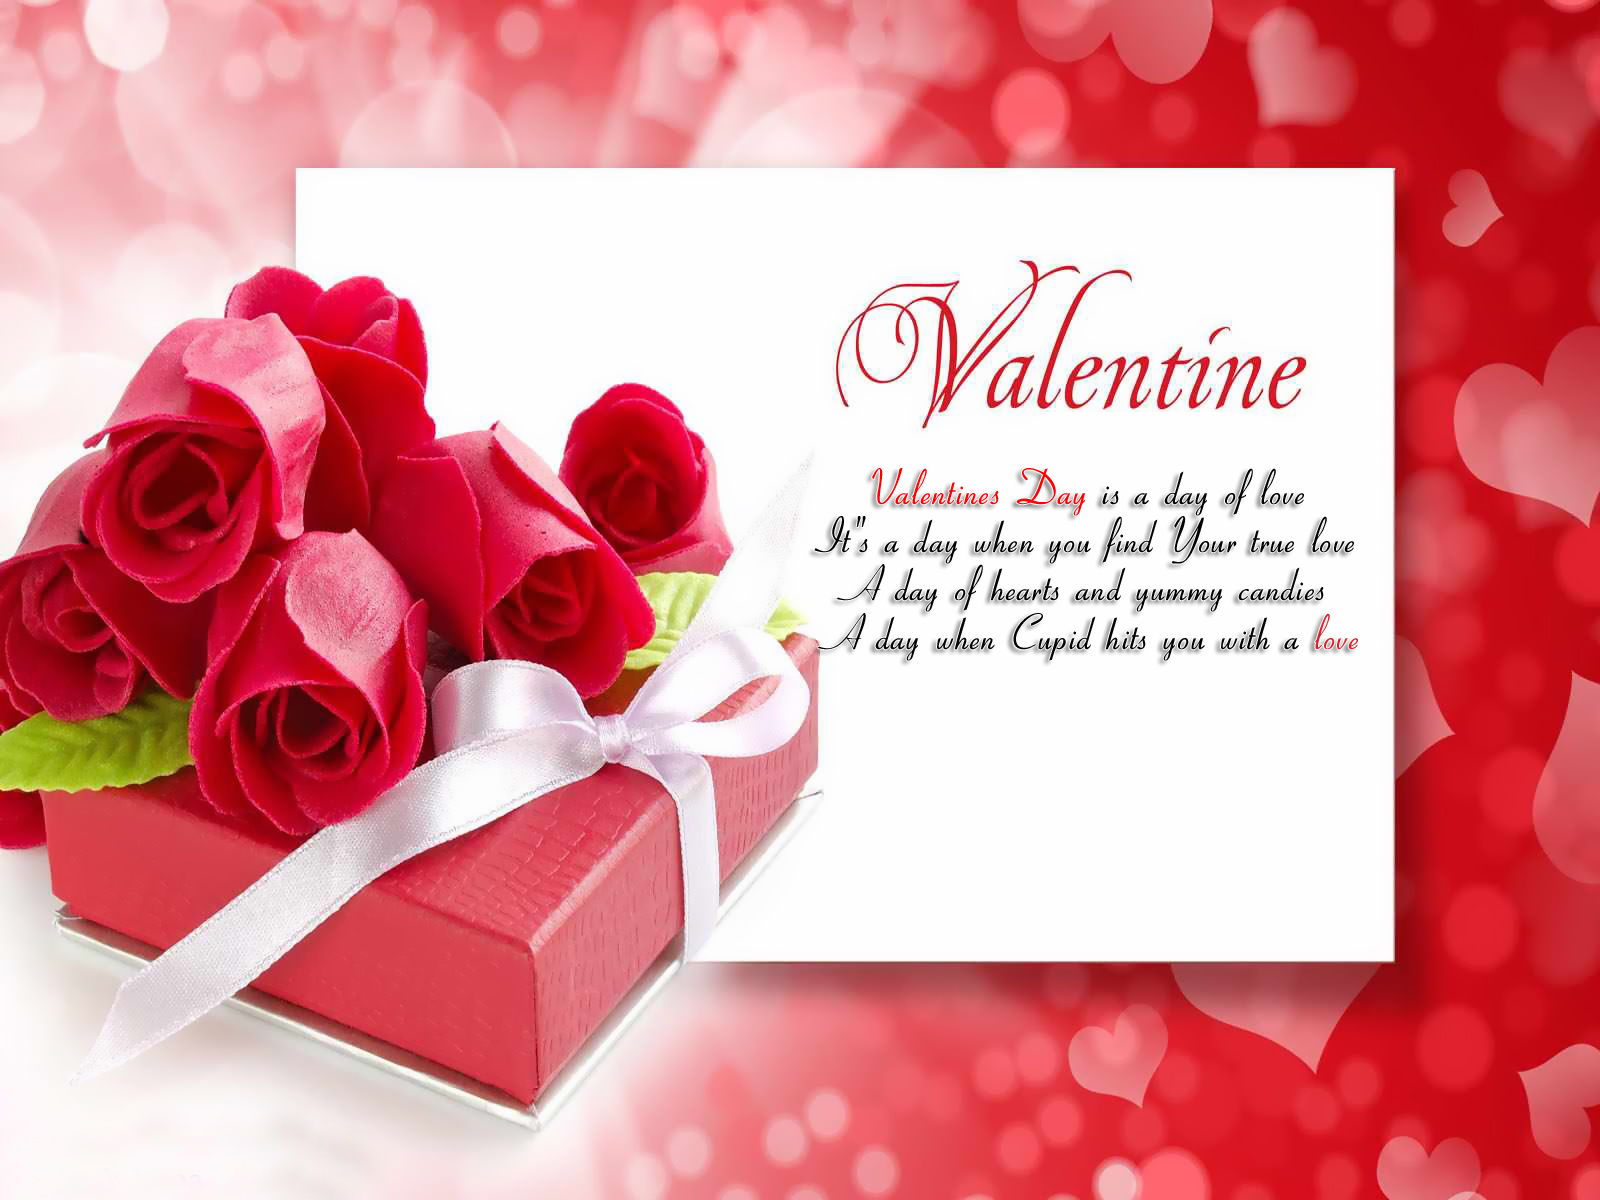 Love Images For Valentines Day Wallpaper